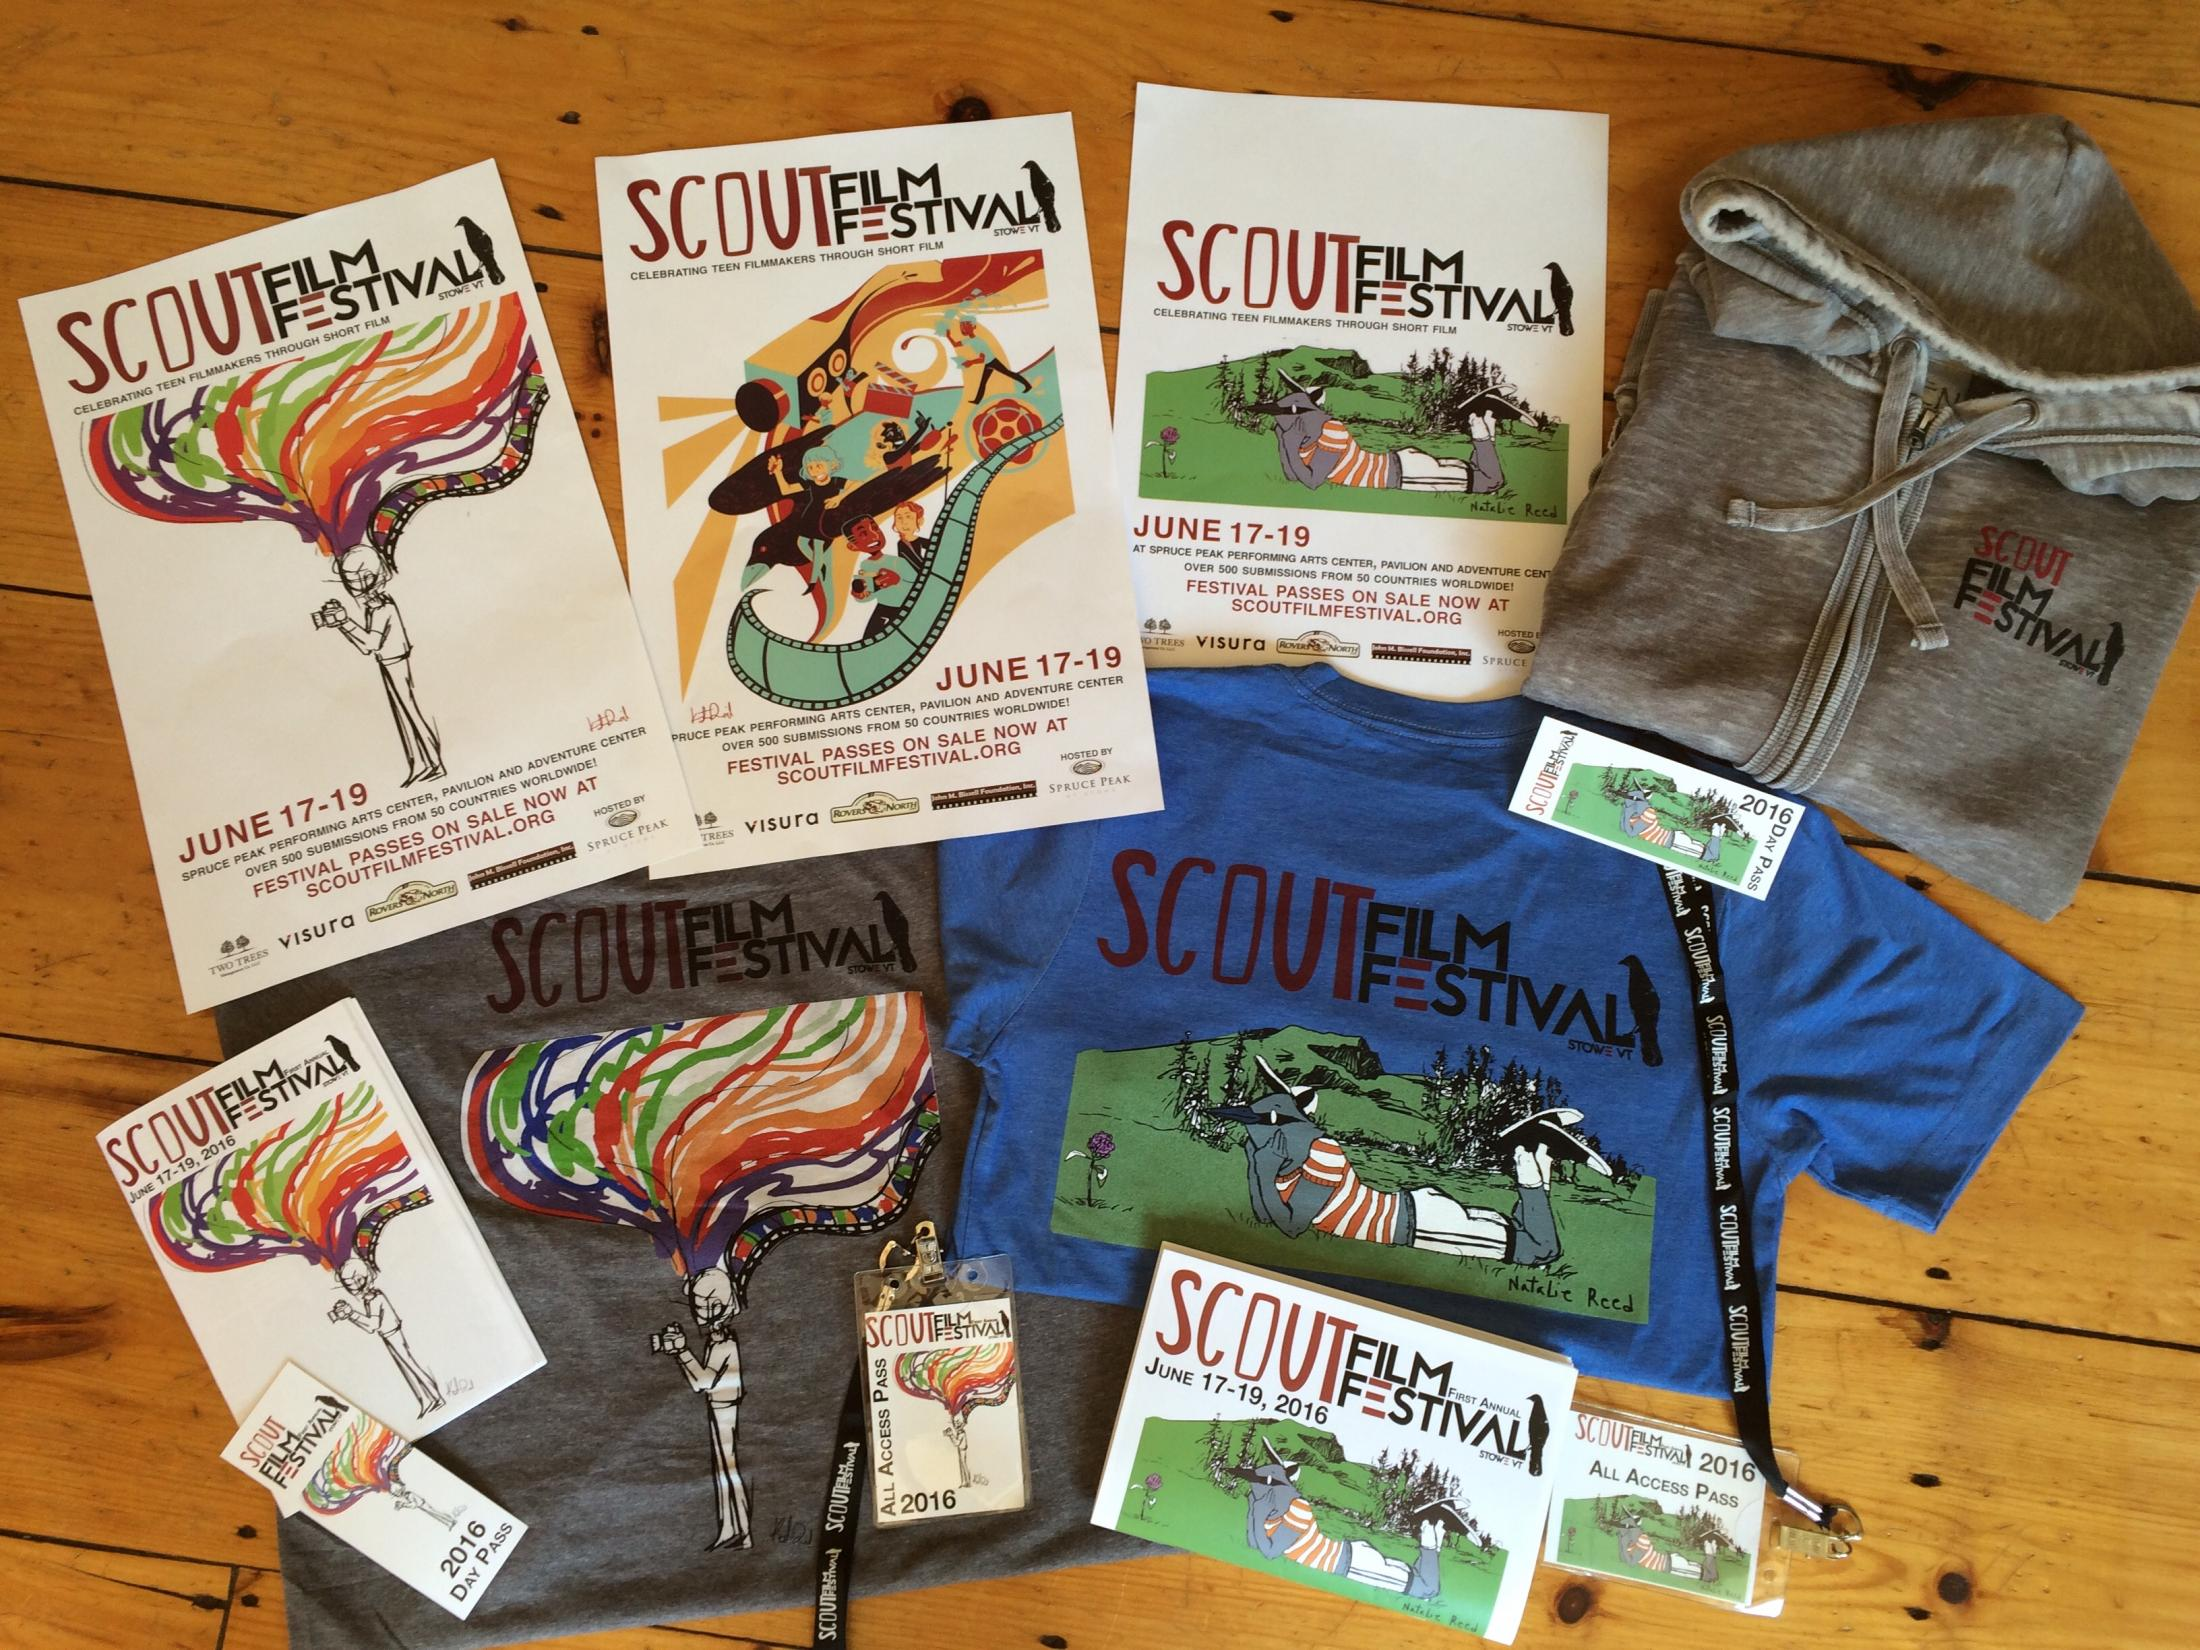 Art and Documentary Photography - Loading Scout_Youth_Art_Promo_Materials_and_Merch.jpg